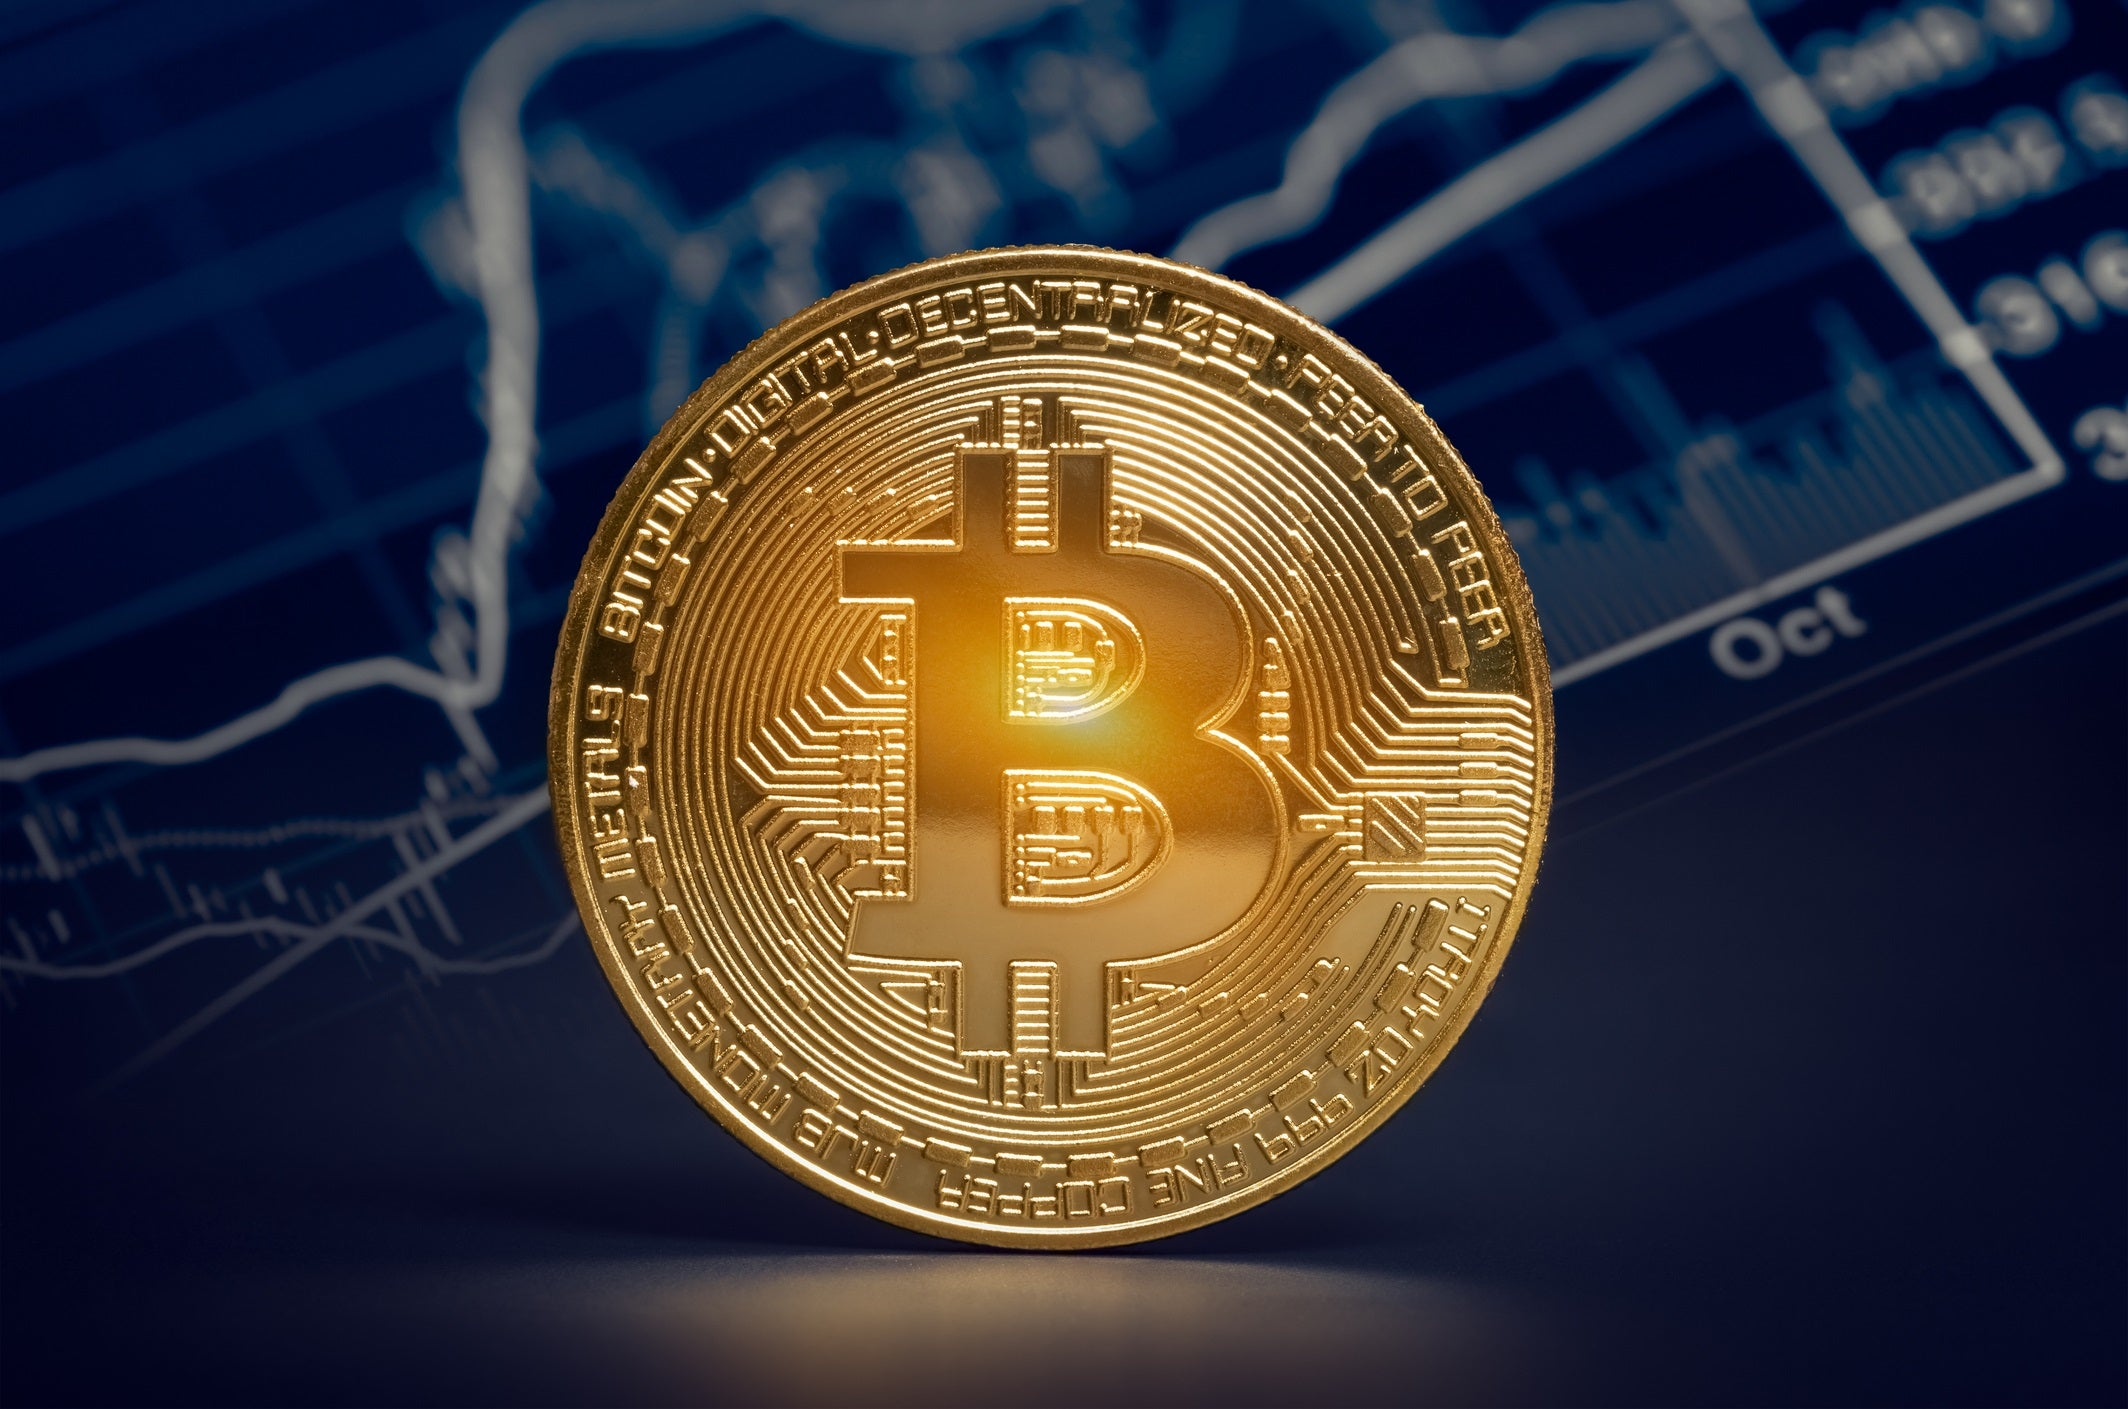 Rbi cautions against use of bitcoins 2021 rib roll mining bitcoins